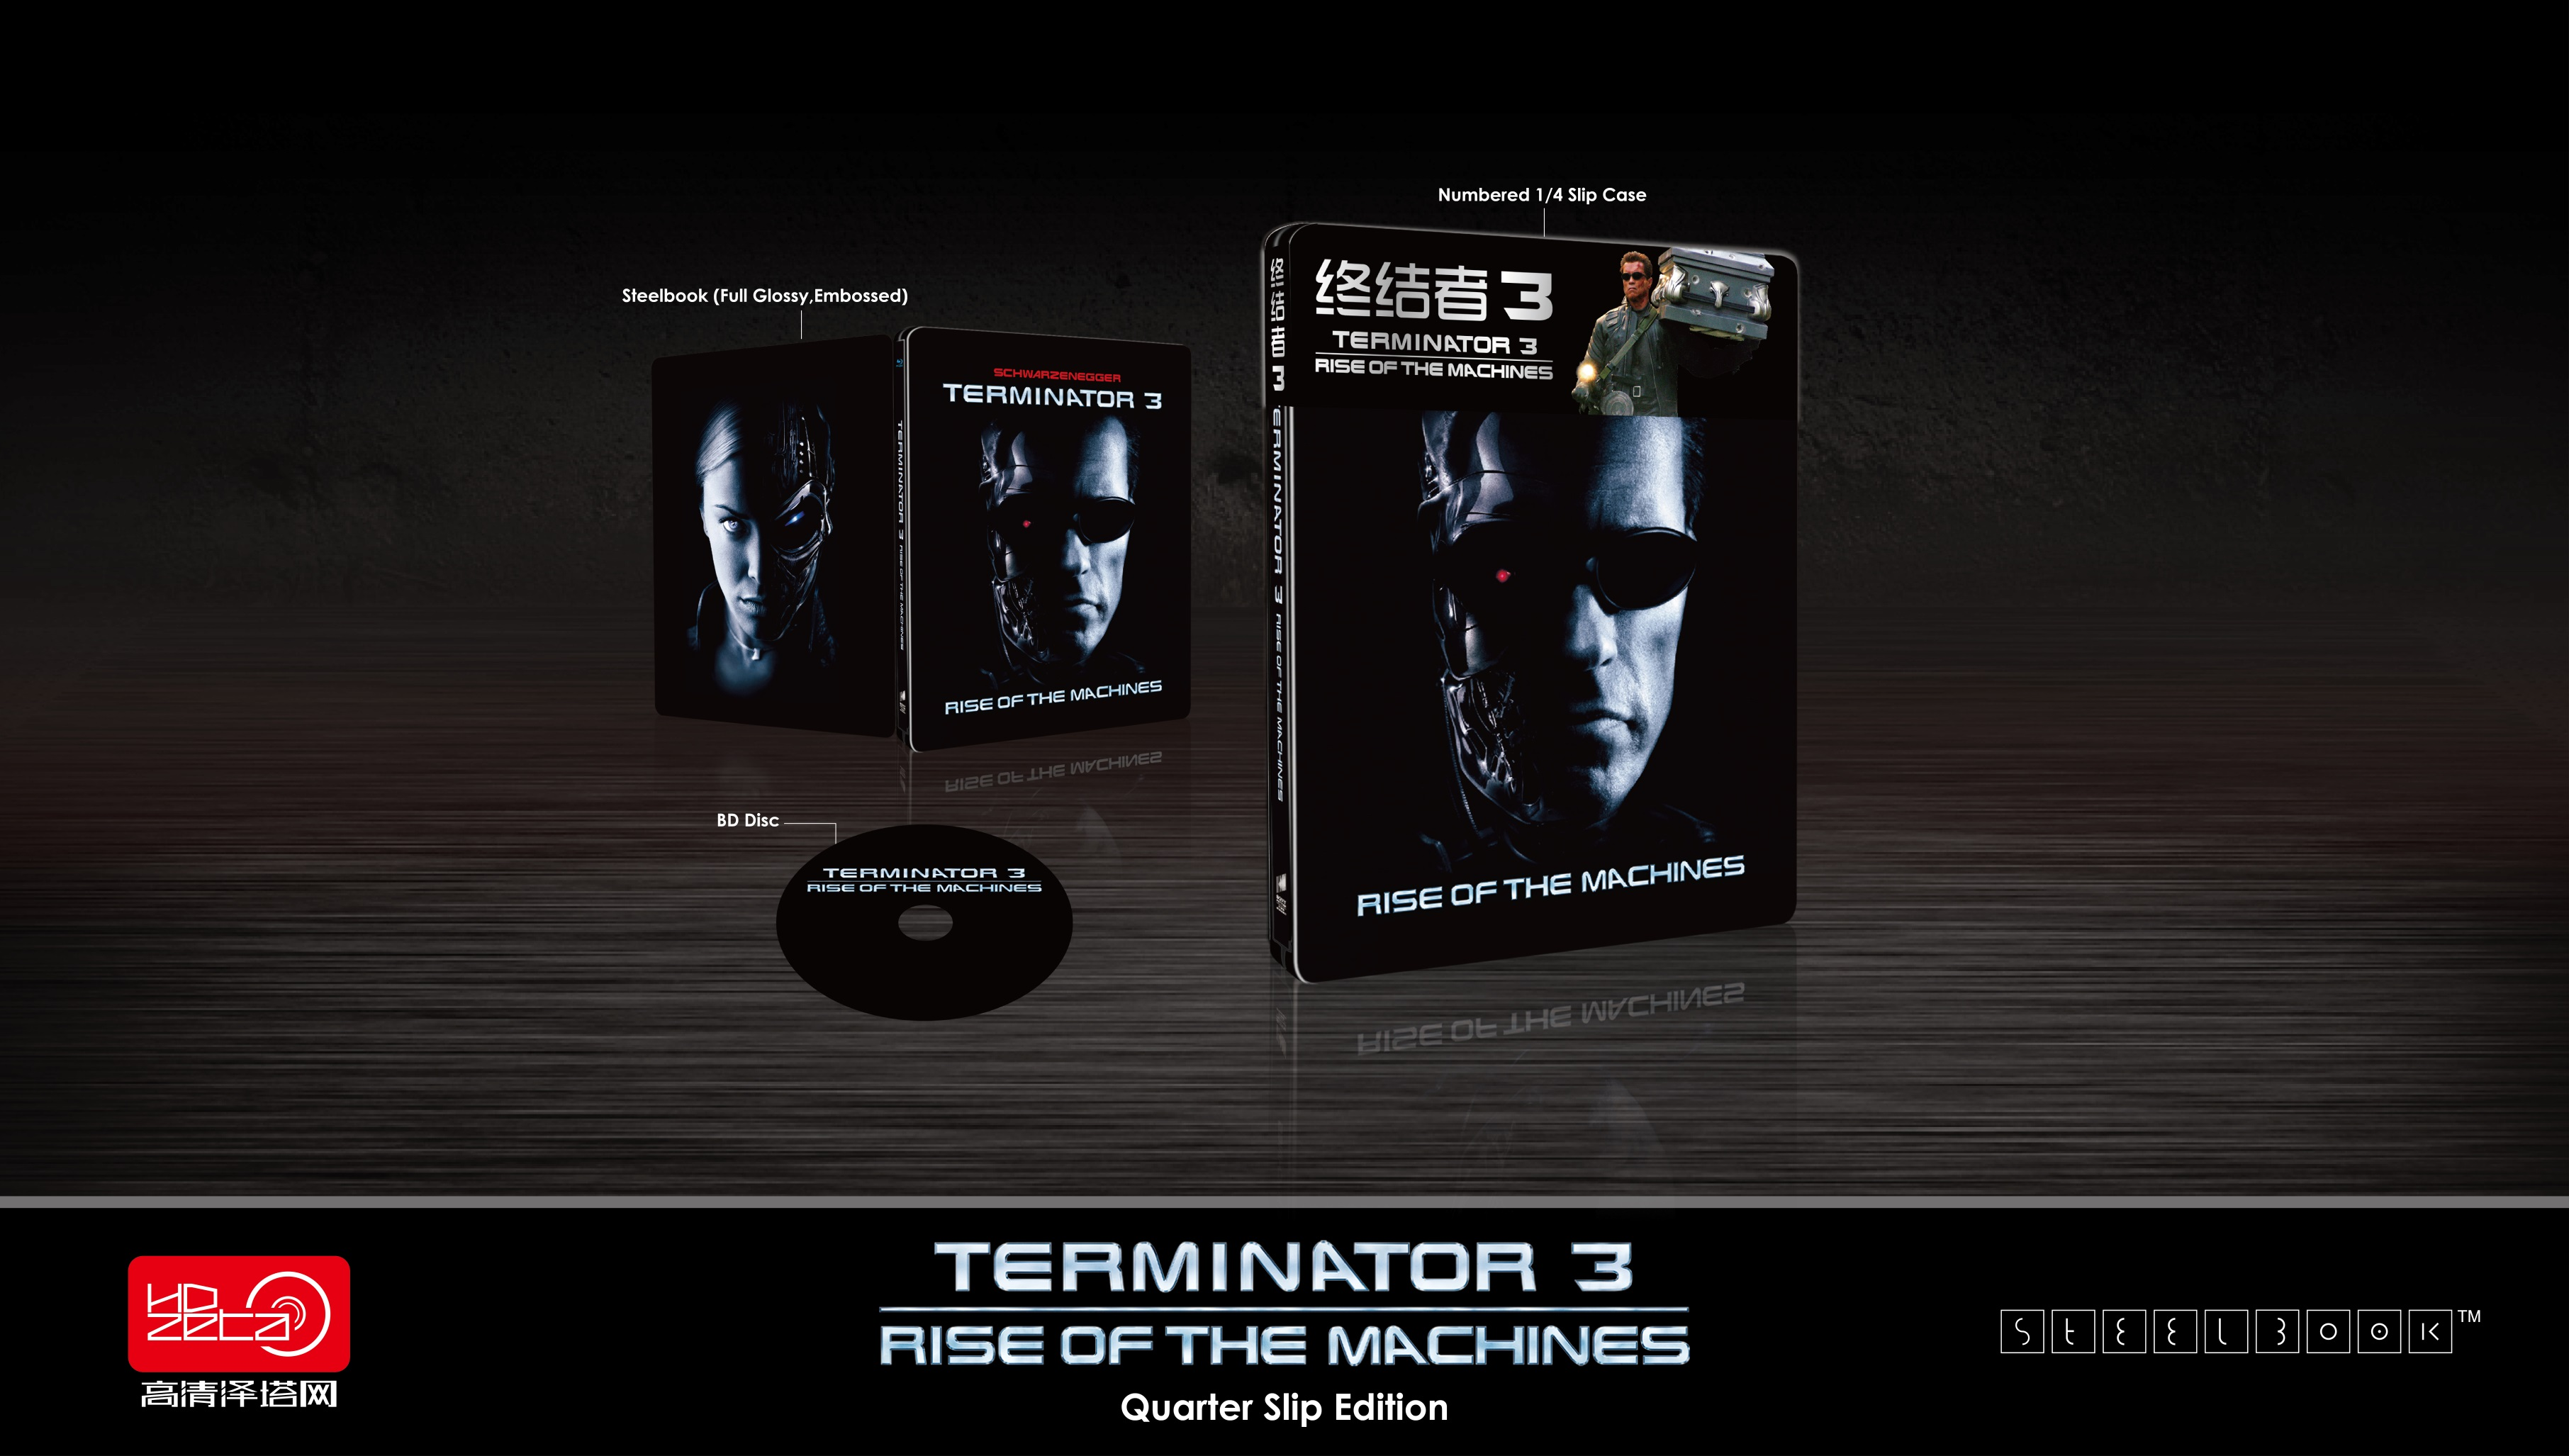 Terminator 3 HDzeta Exclusive 1/4 Slip Edition